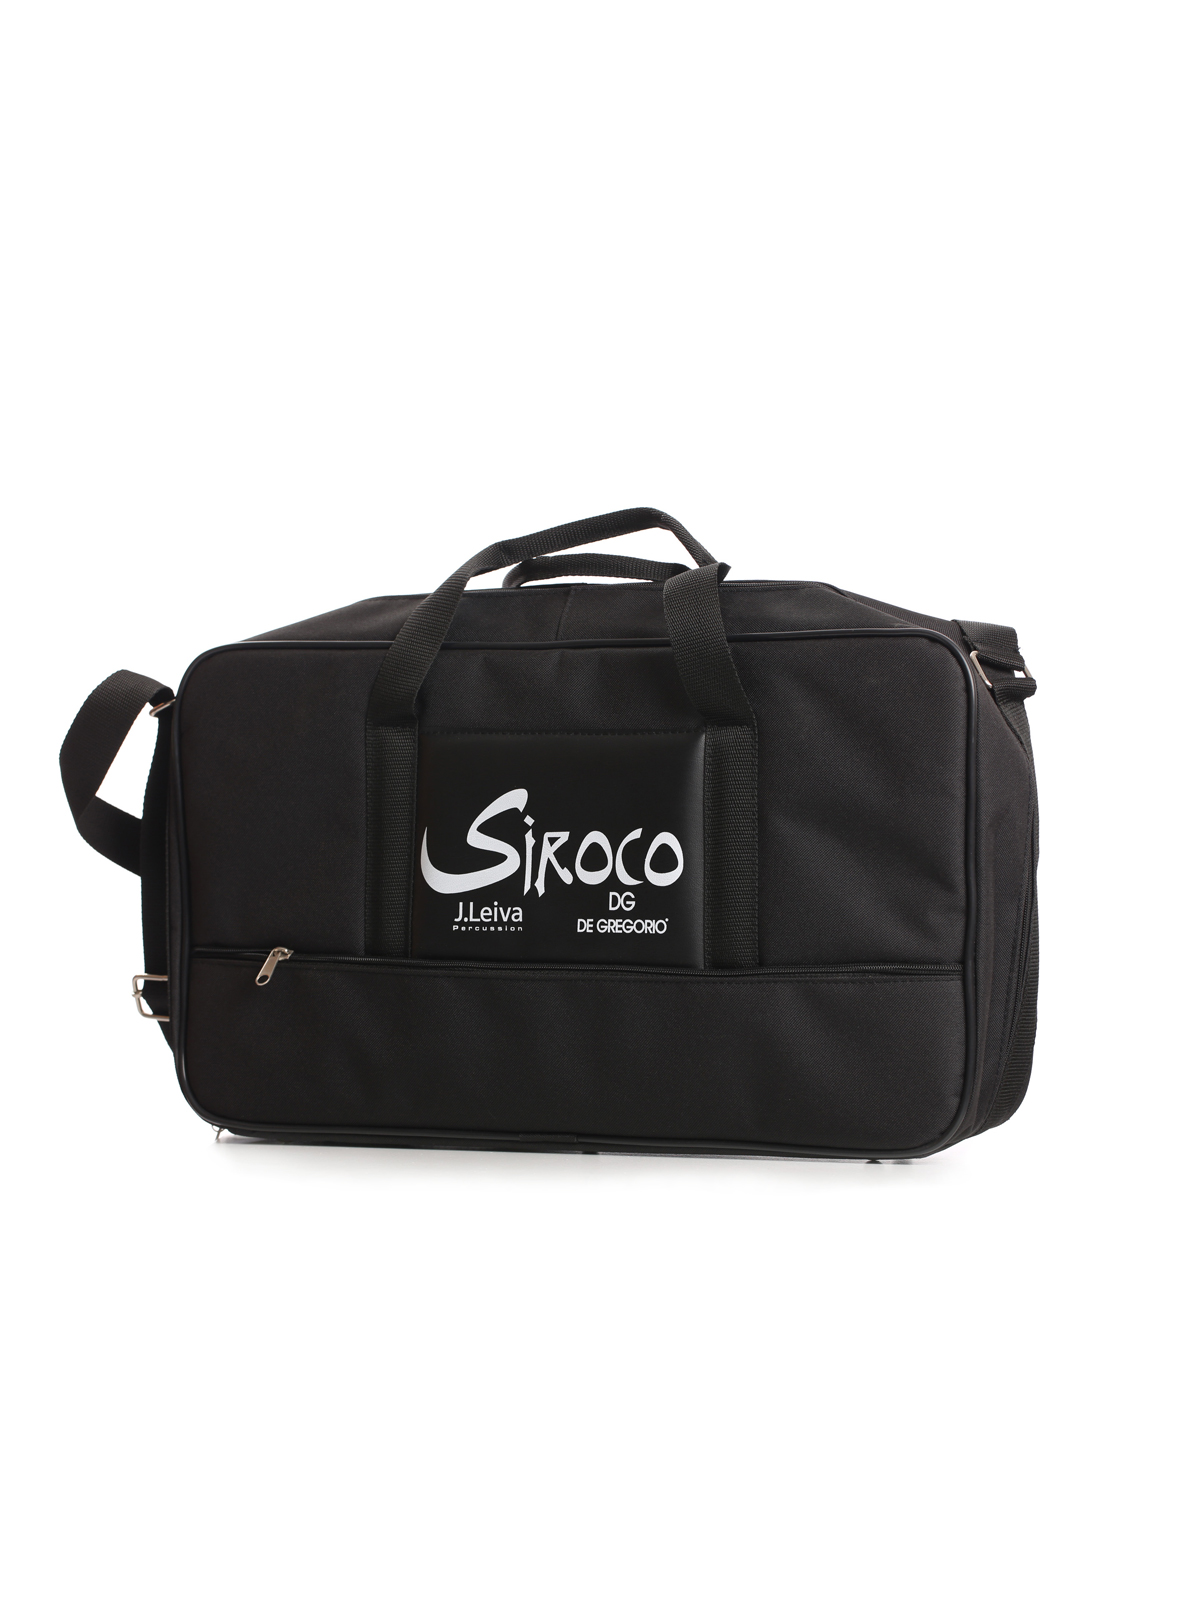 Padded carrying bag for the collapsible cajon Siroco